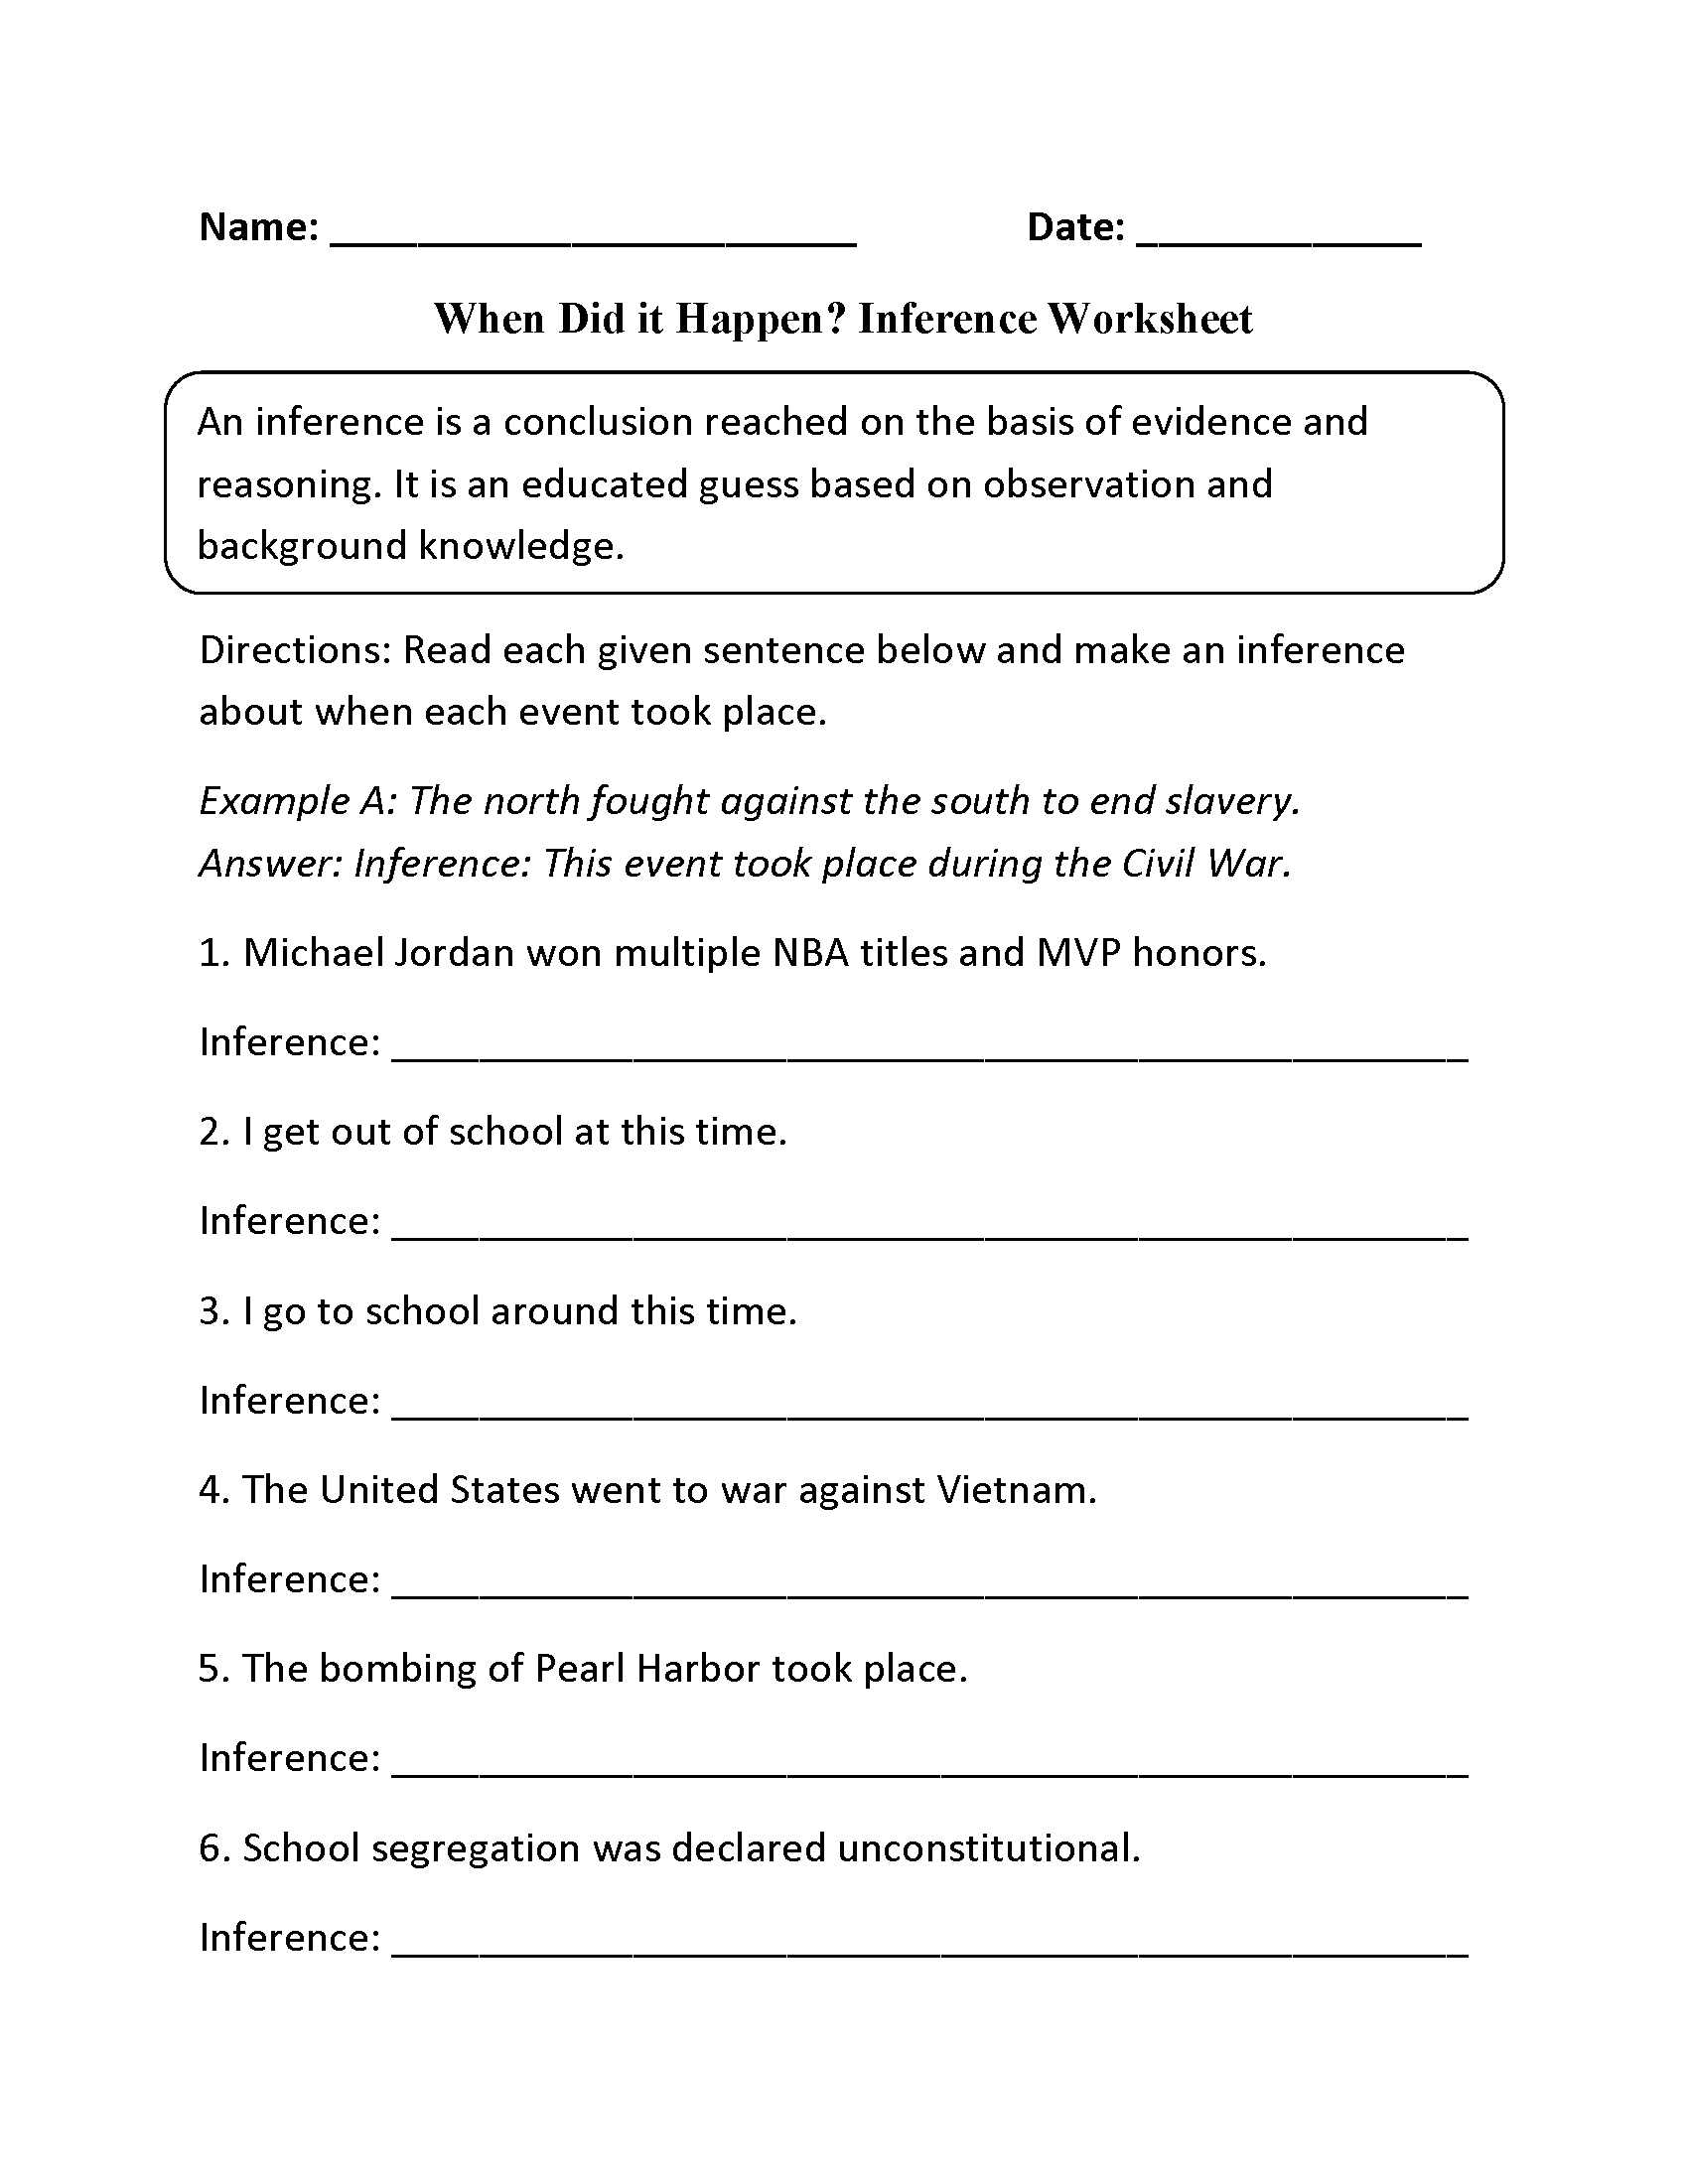 Reading Worksheets  Inference Worksheets With Regard To Inferences Worksheet 4